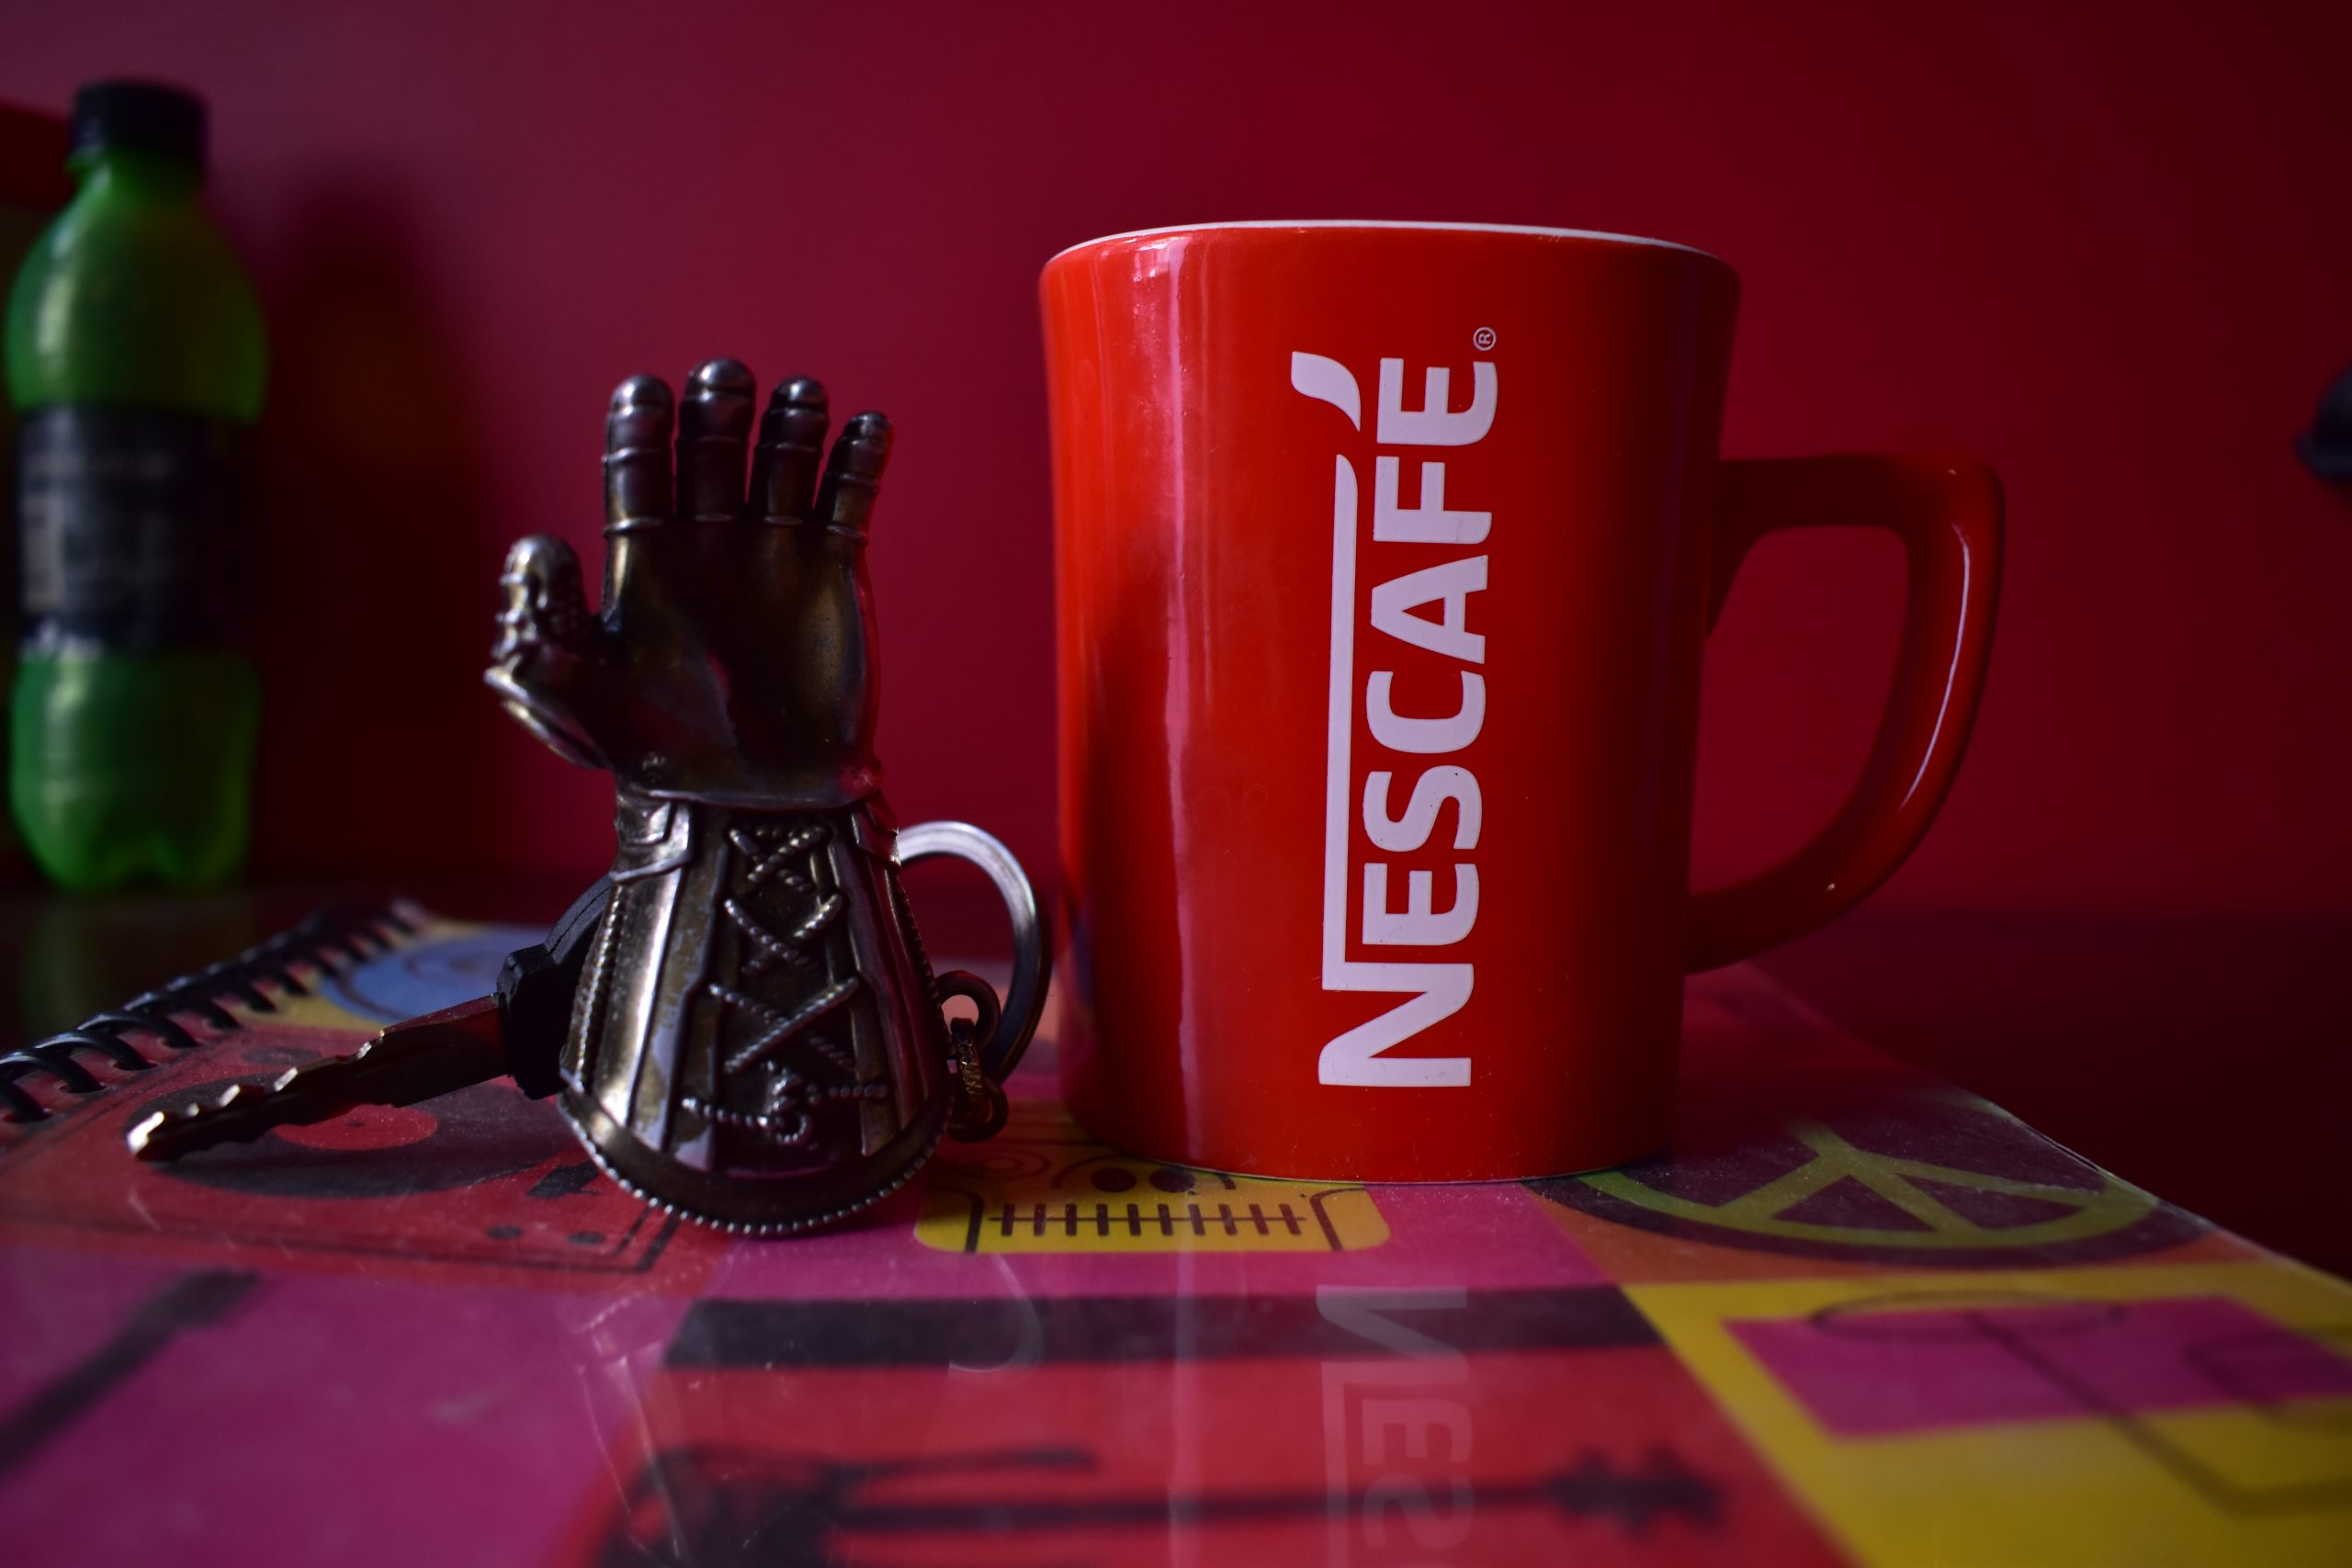 Nescafe cup on the notebook